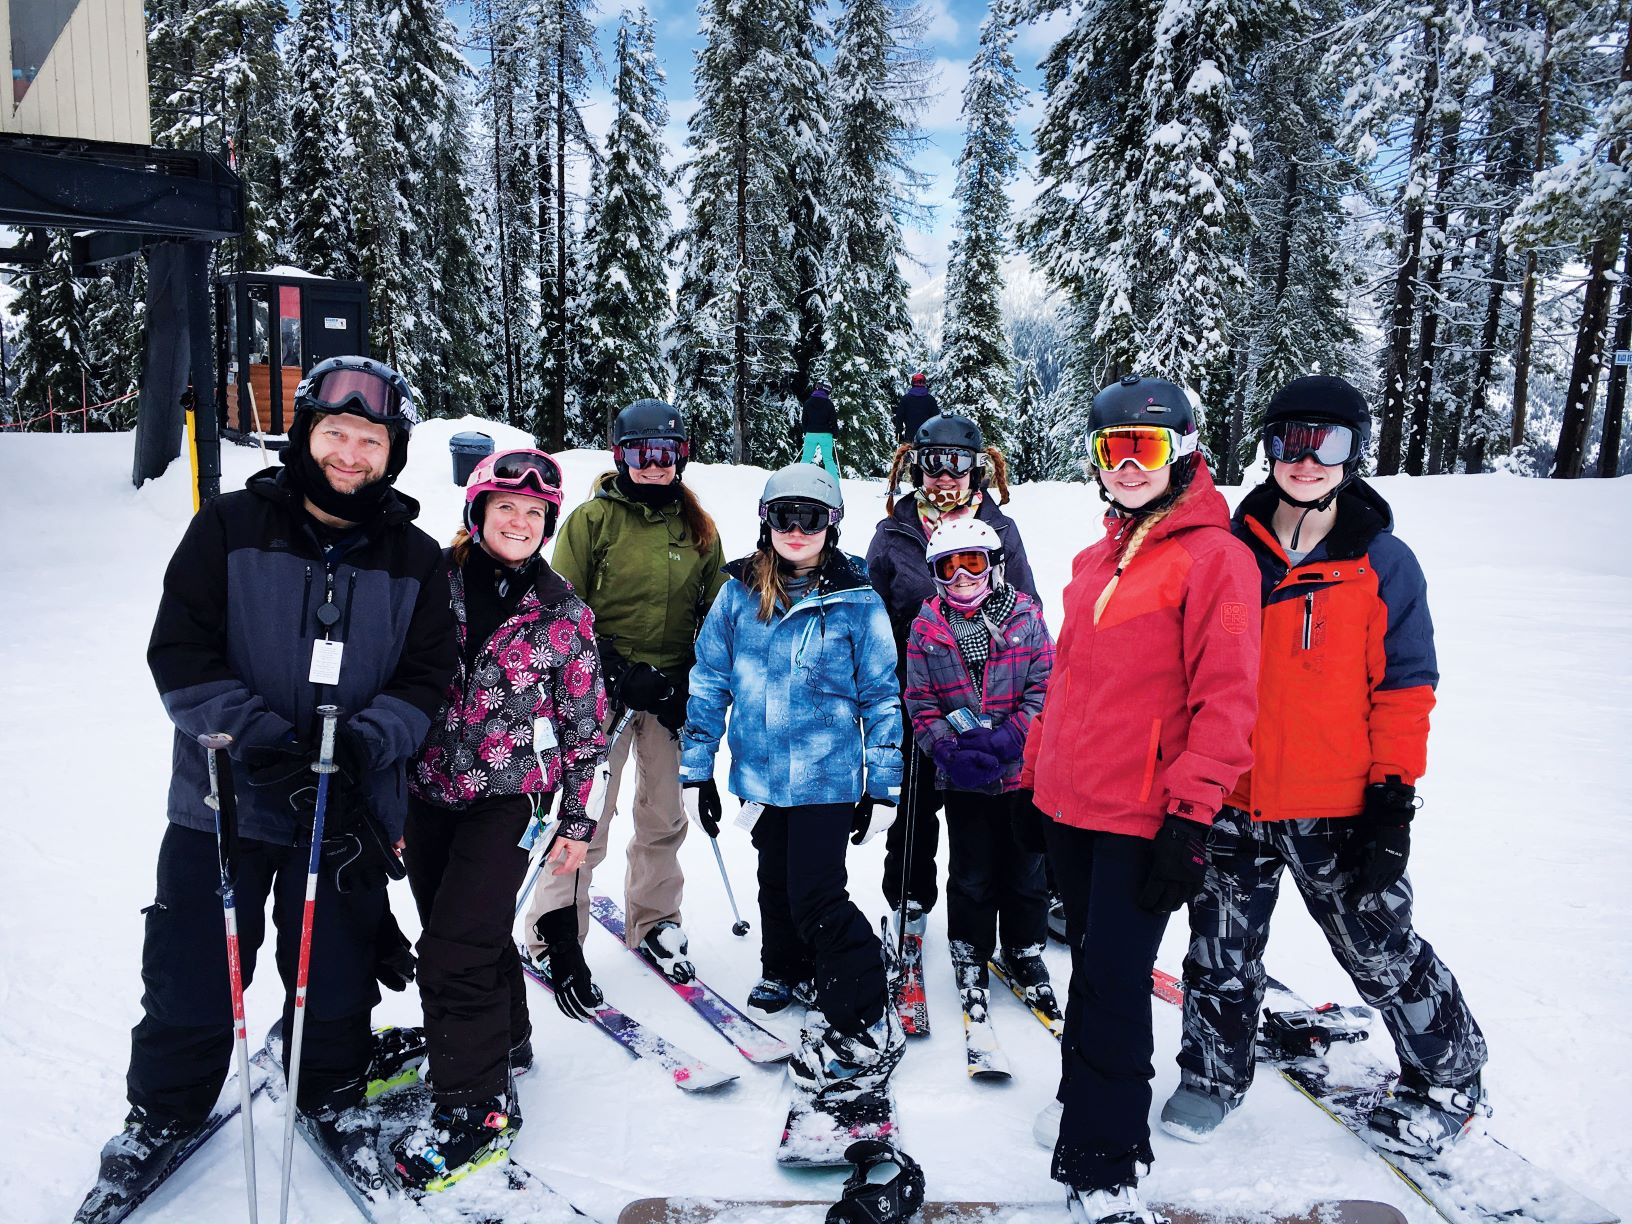 A family group skiing and snowboarding.